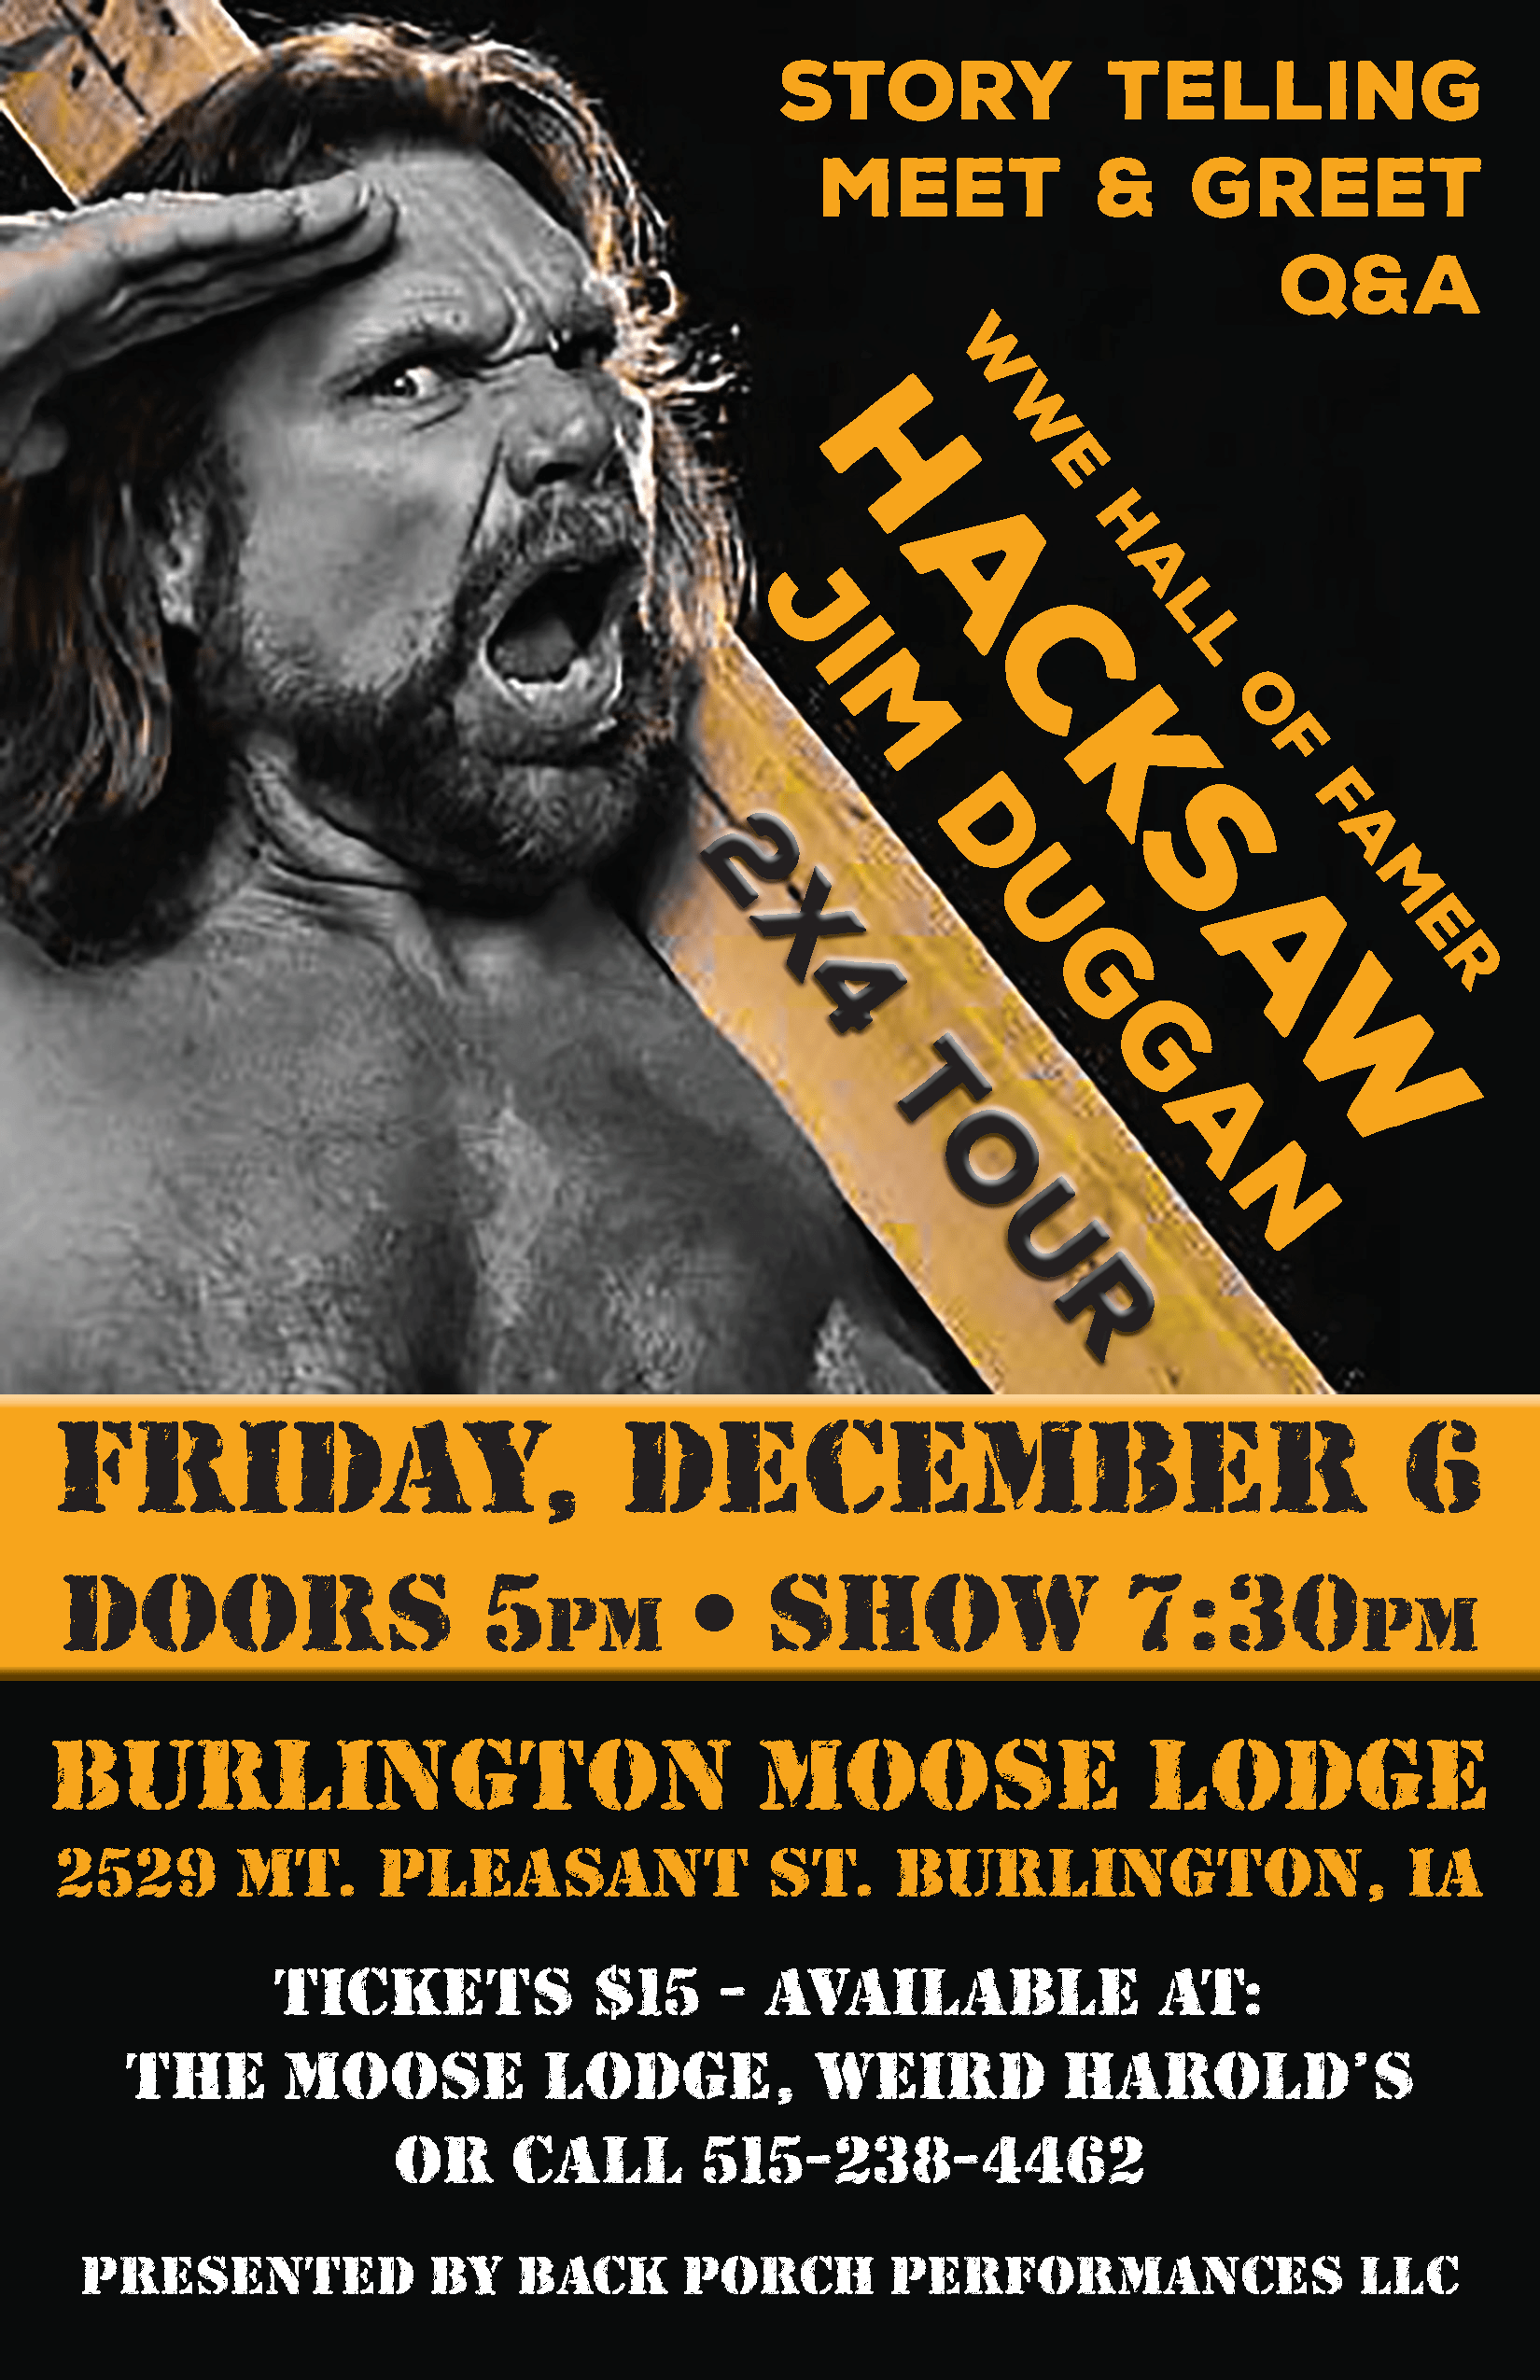 Jim Duggan Meet and greet at the Moose Lodge in Burlington on December 6th at 7:30 PM. Presented by Back Porch Performances LLC